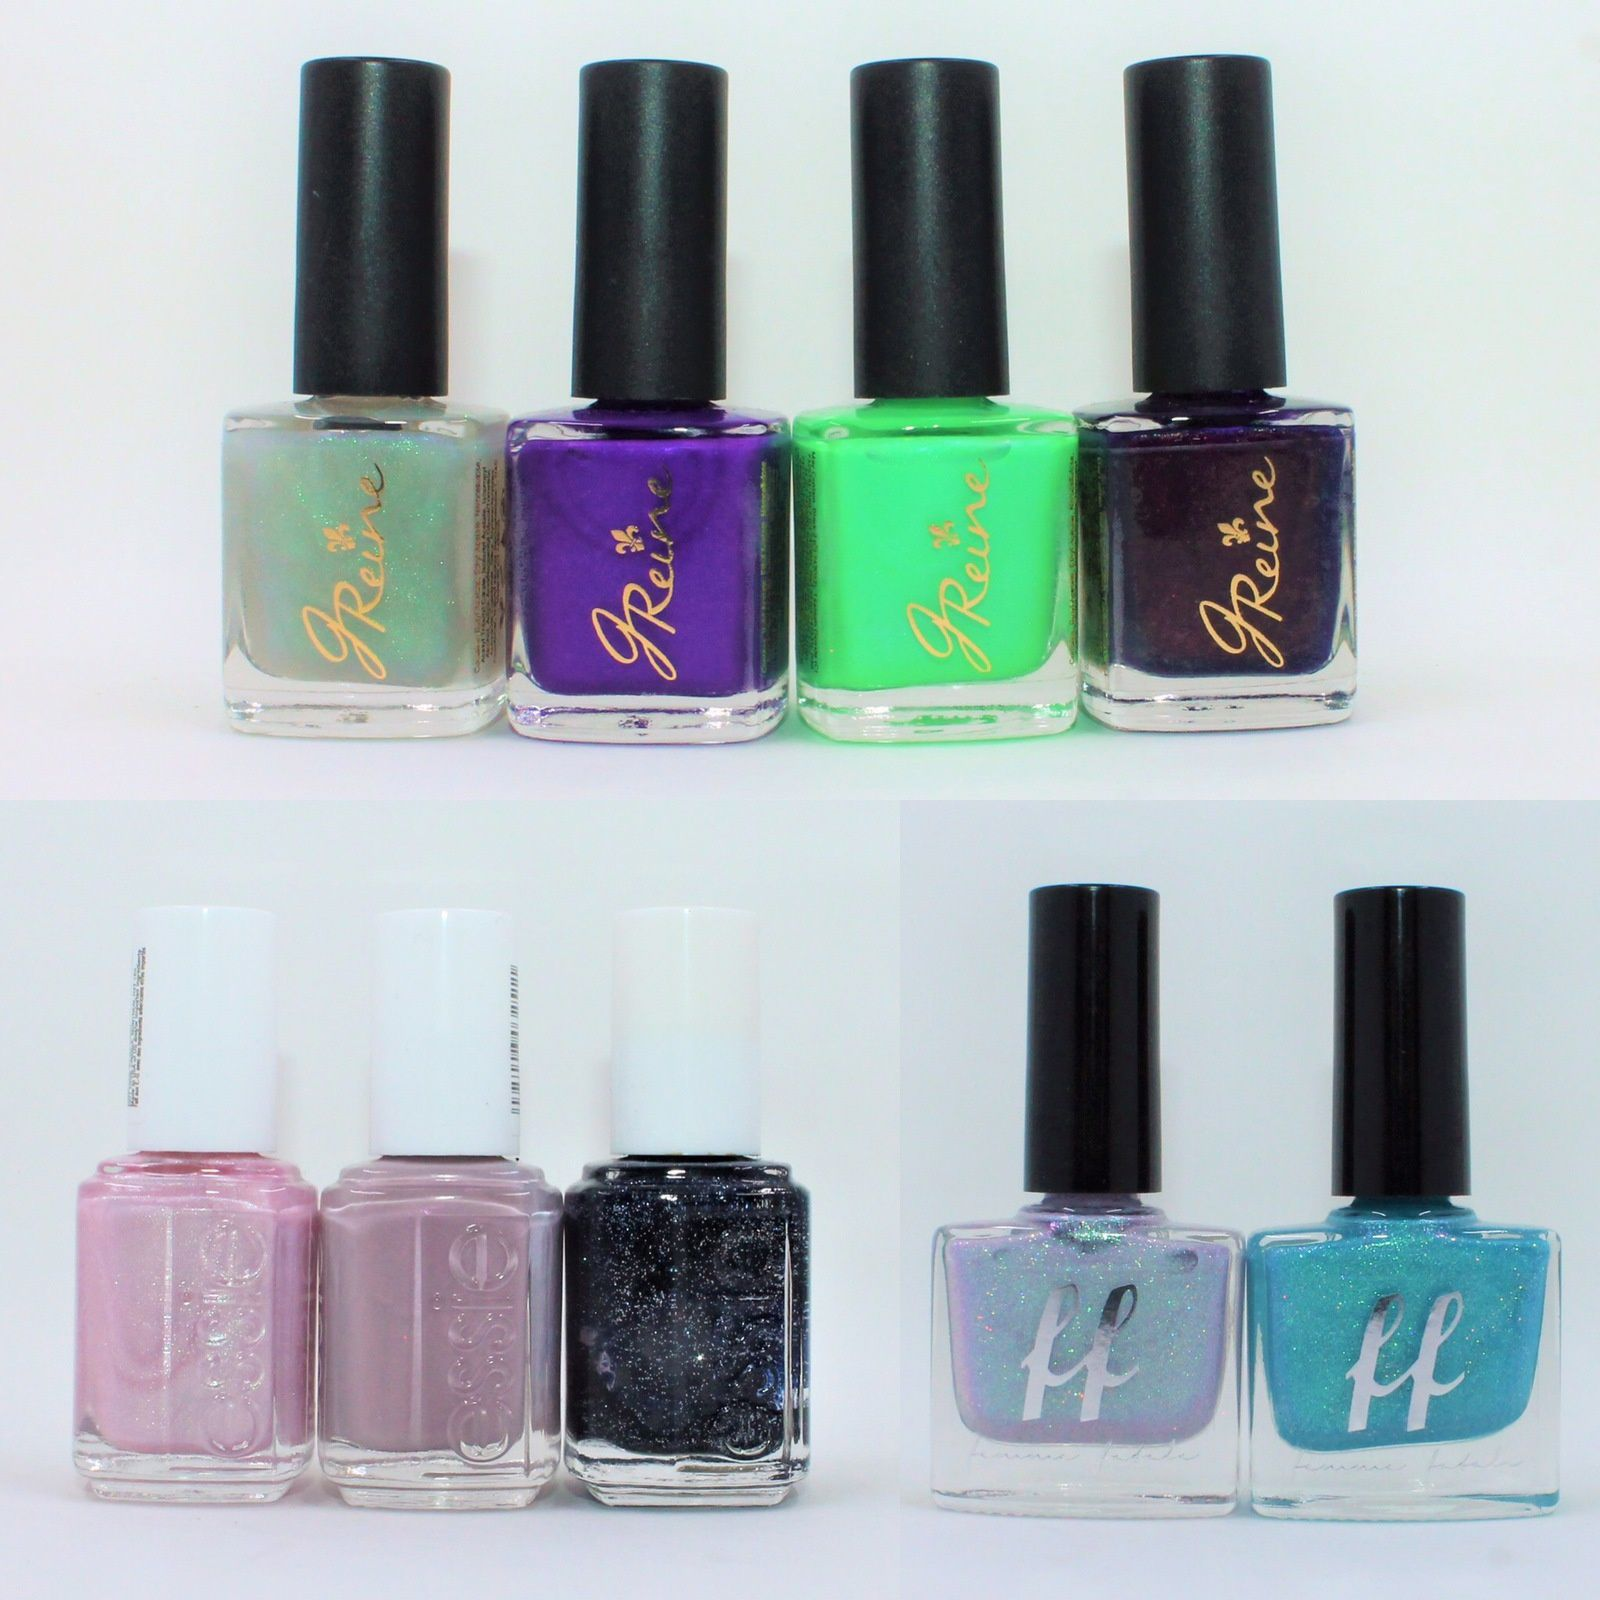 JReine Gulf Waters, Zephyr, Hand Grenade, Karma. Essie Polar-izing, Wire-less is More, Starry Starry Night (old formula). Femme Fatale Cosmetcis Patience, Sky Queen.